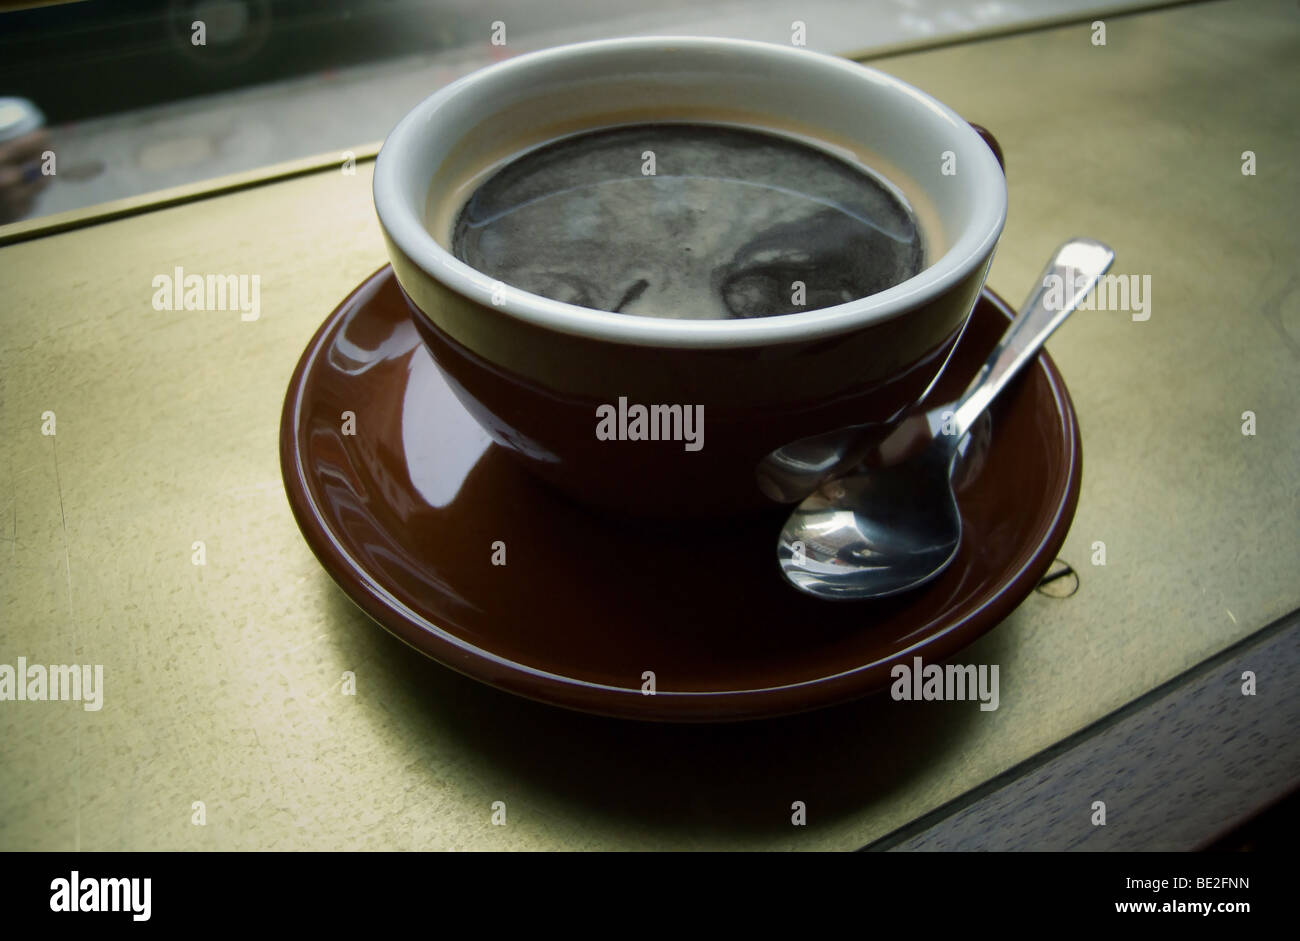 A cup of Cafe Americano at Stumptown Coffee in New York - Stock Image